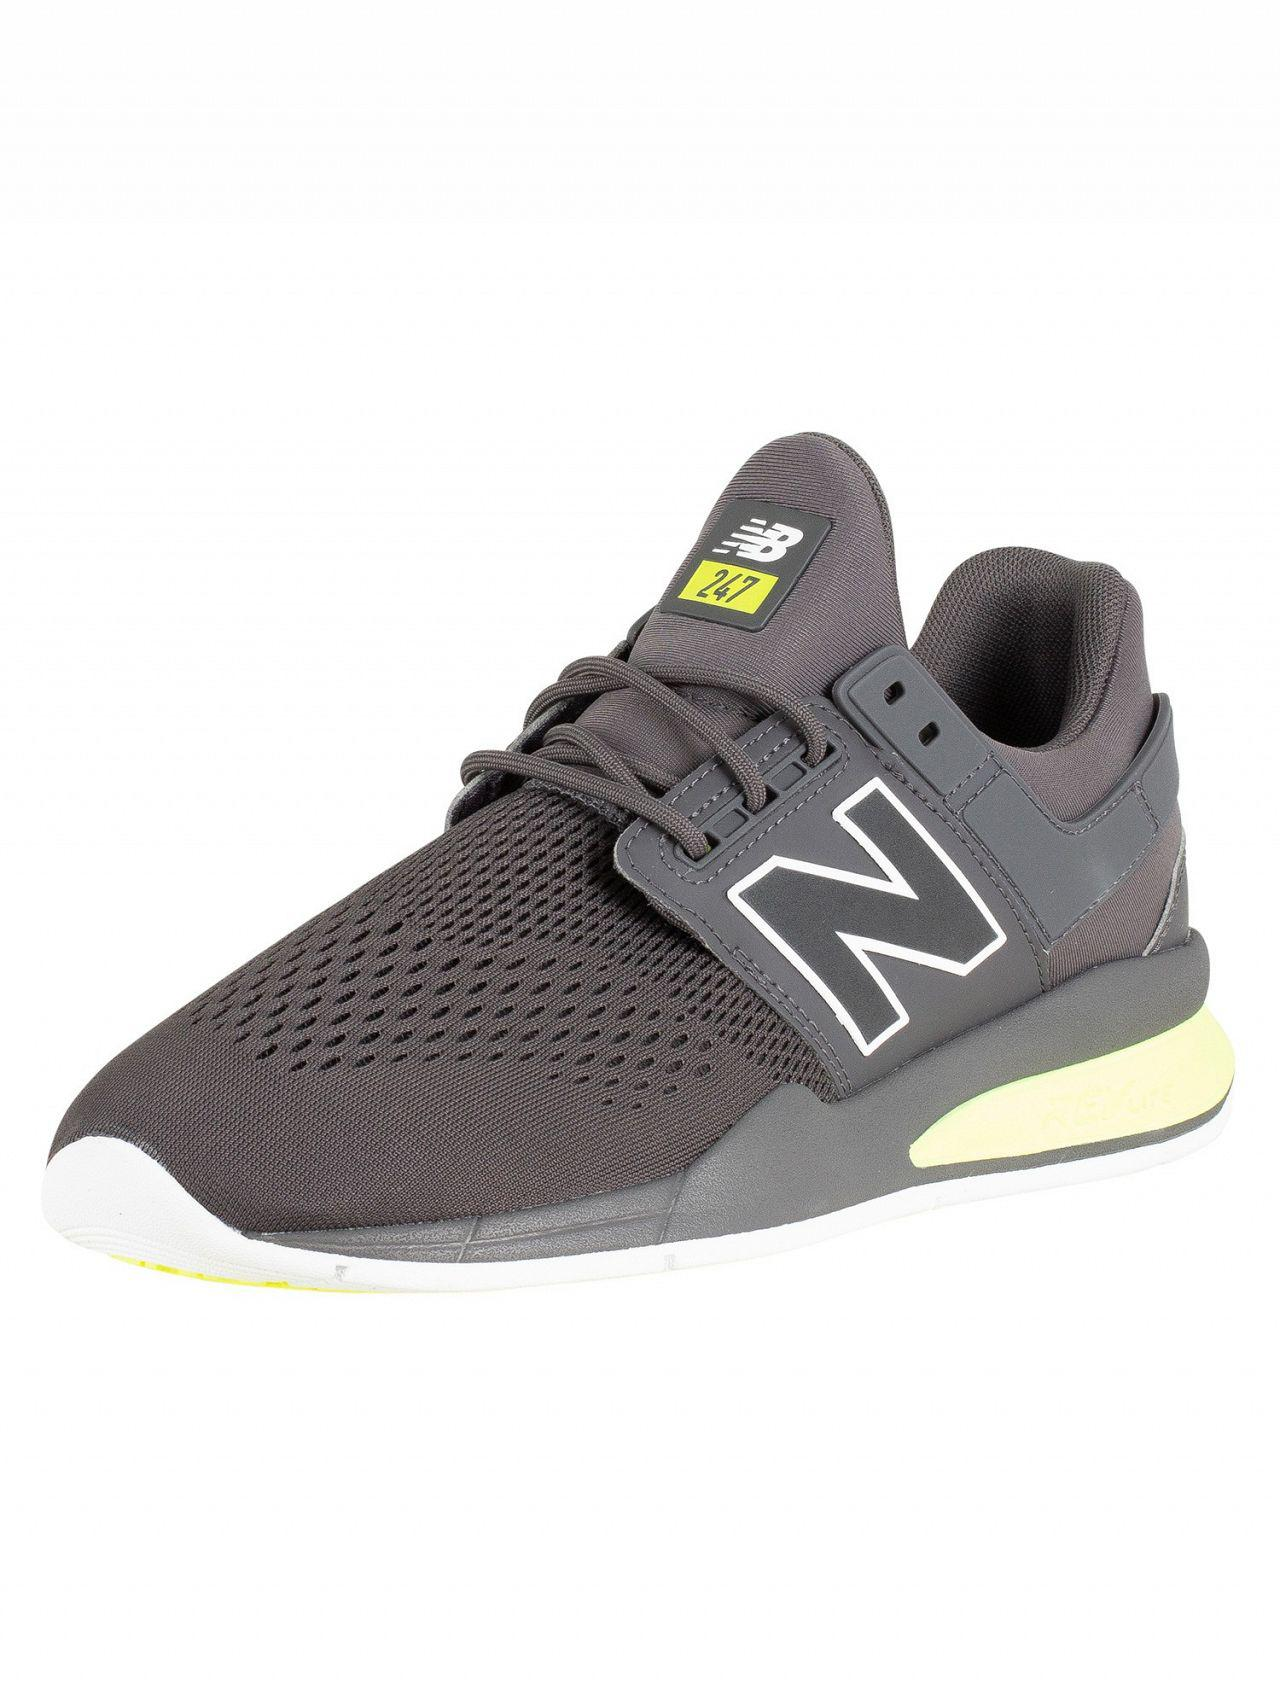 5efe6cd13bfb8 Lyst - New Balance Grey 247 Trainers in Gray for Men